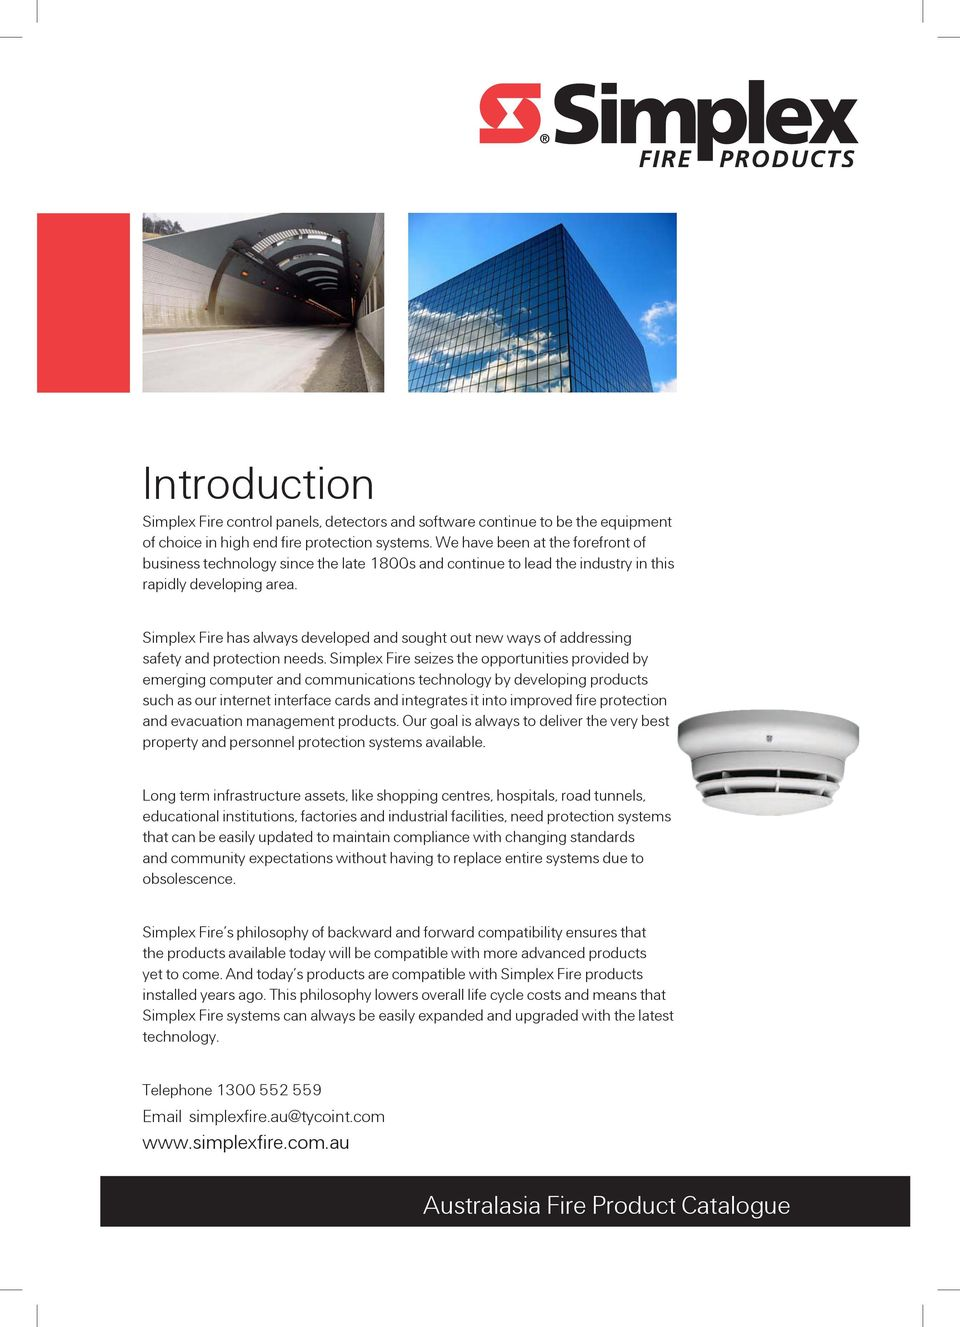 Fire Detection Australia Product Catalogue Issue 2 Pdf System Ebl128 Panasonic Electric Works Europe Ag Simplex Has Always Developed And Sought Out New Ways Of Addressing Safety Protection Needs